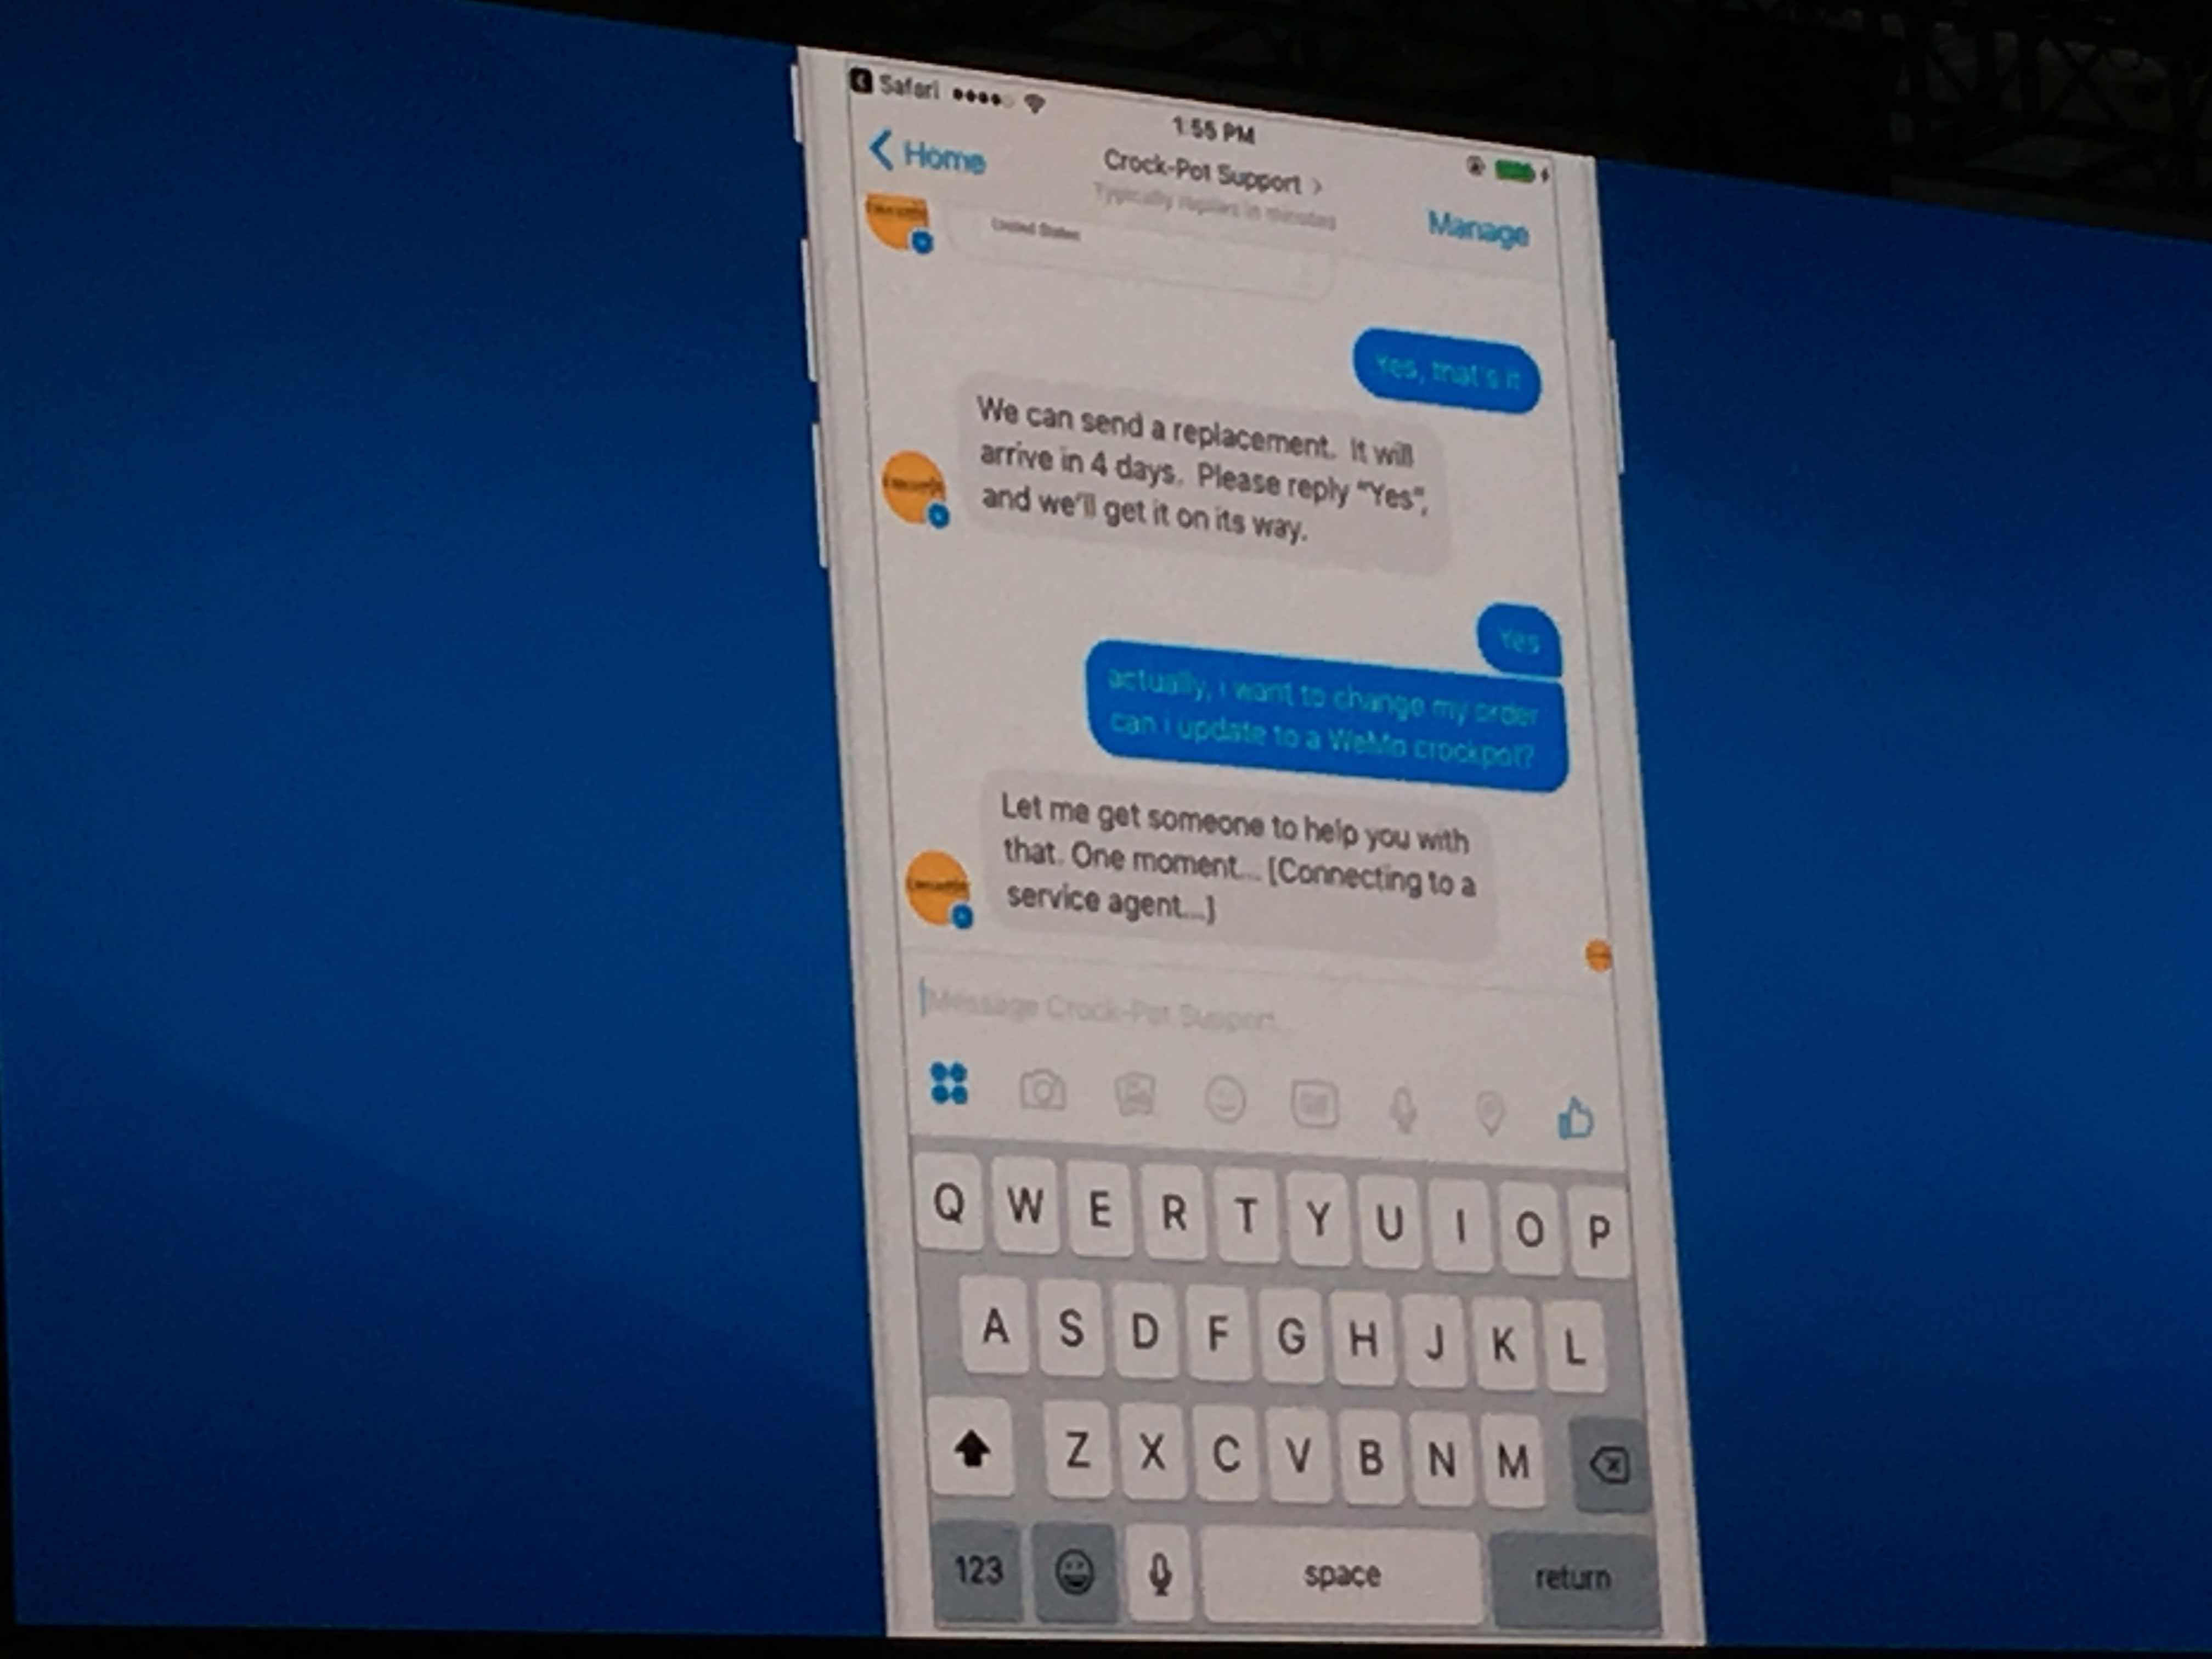 Salesforce LiveMessage lets customers interact with bots and frees up human reps to respond to more complex issues.